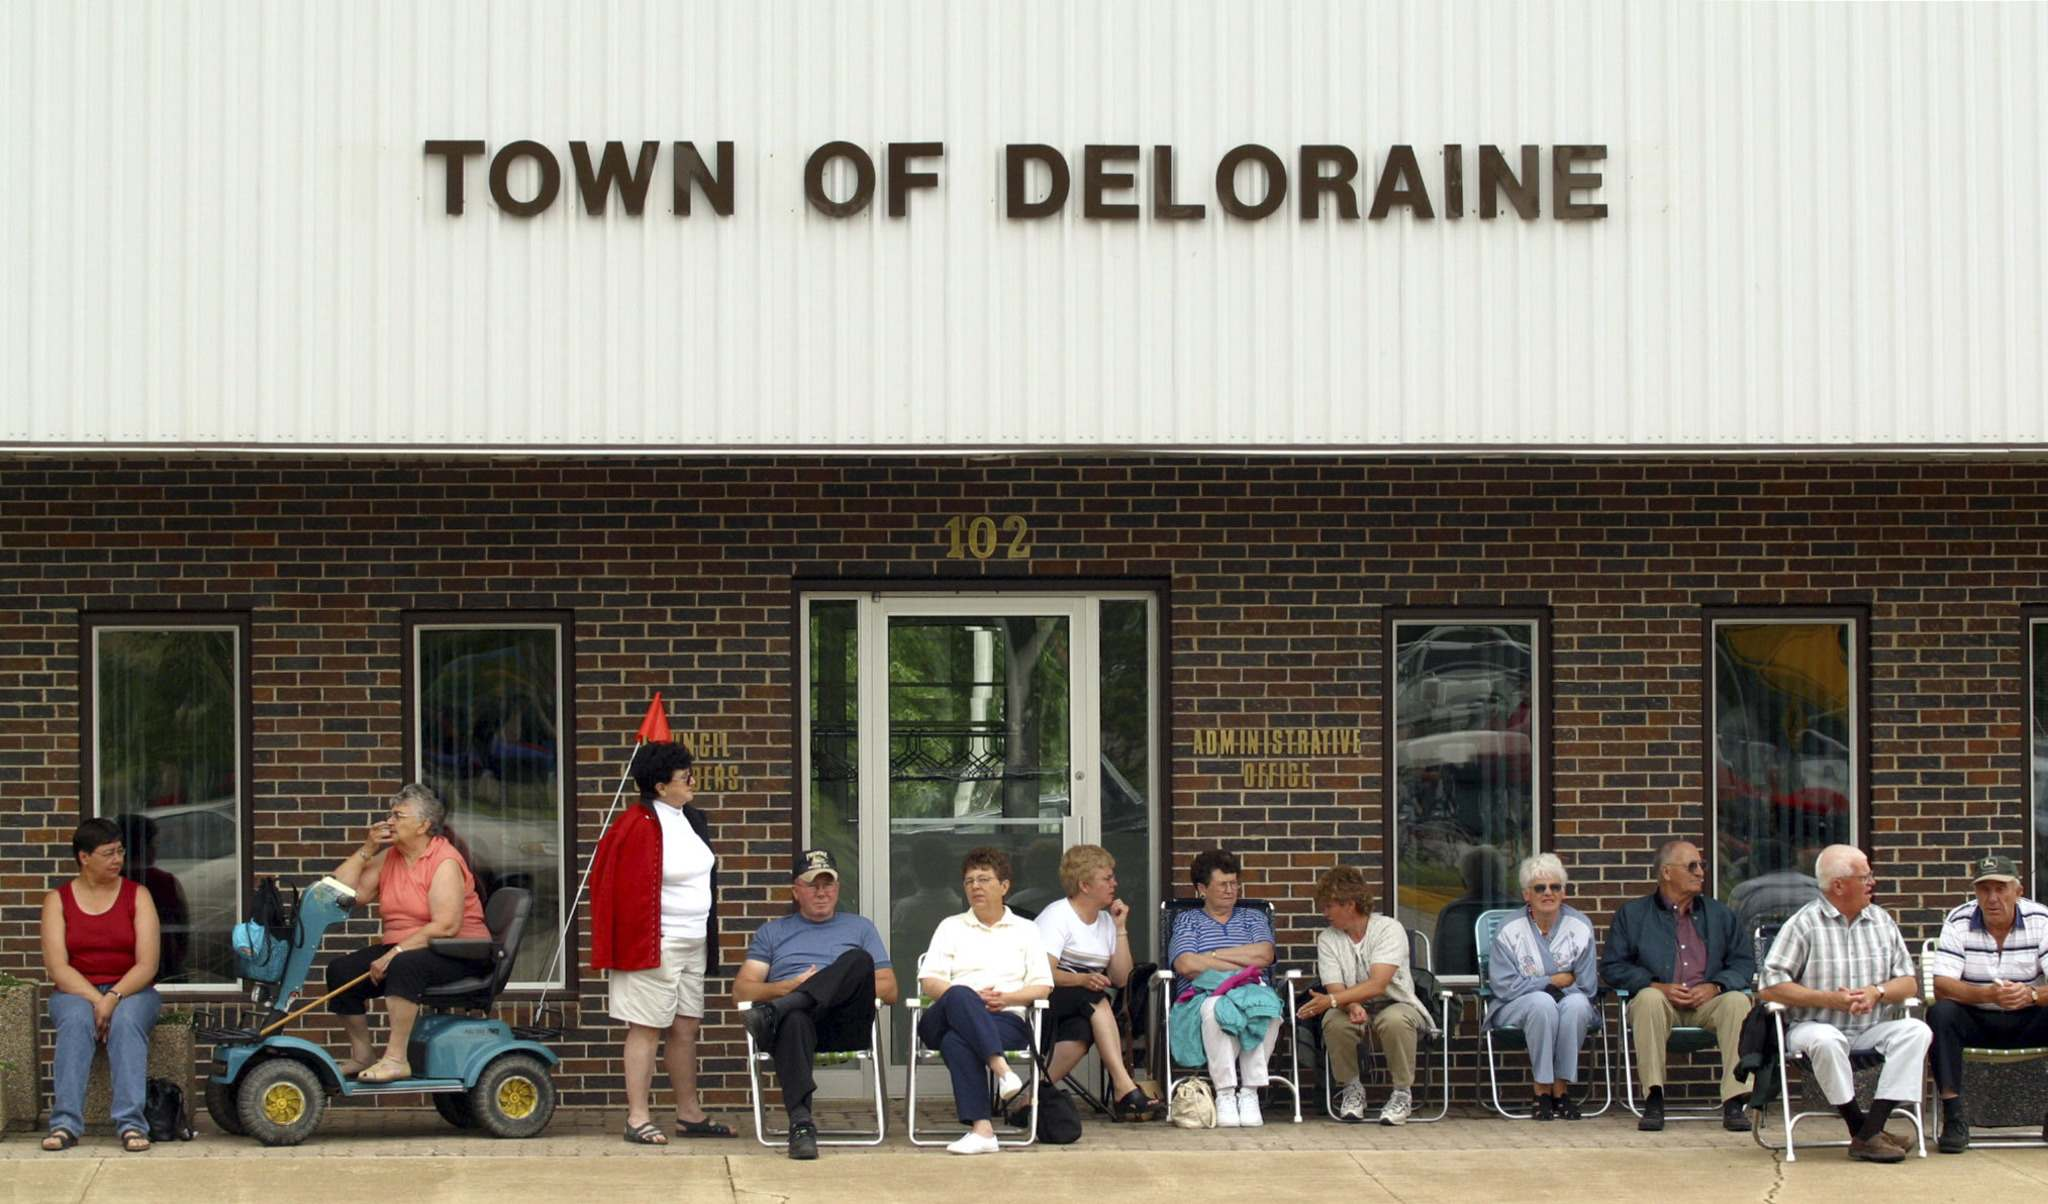 Residents of Deloraine wait for a parade to start during the opening of Nygard Park on June 22, 2002. Peter Nygard was the Grand Marshall. (Mike Aporius / Winnipeg Free Press files)</p>